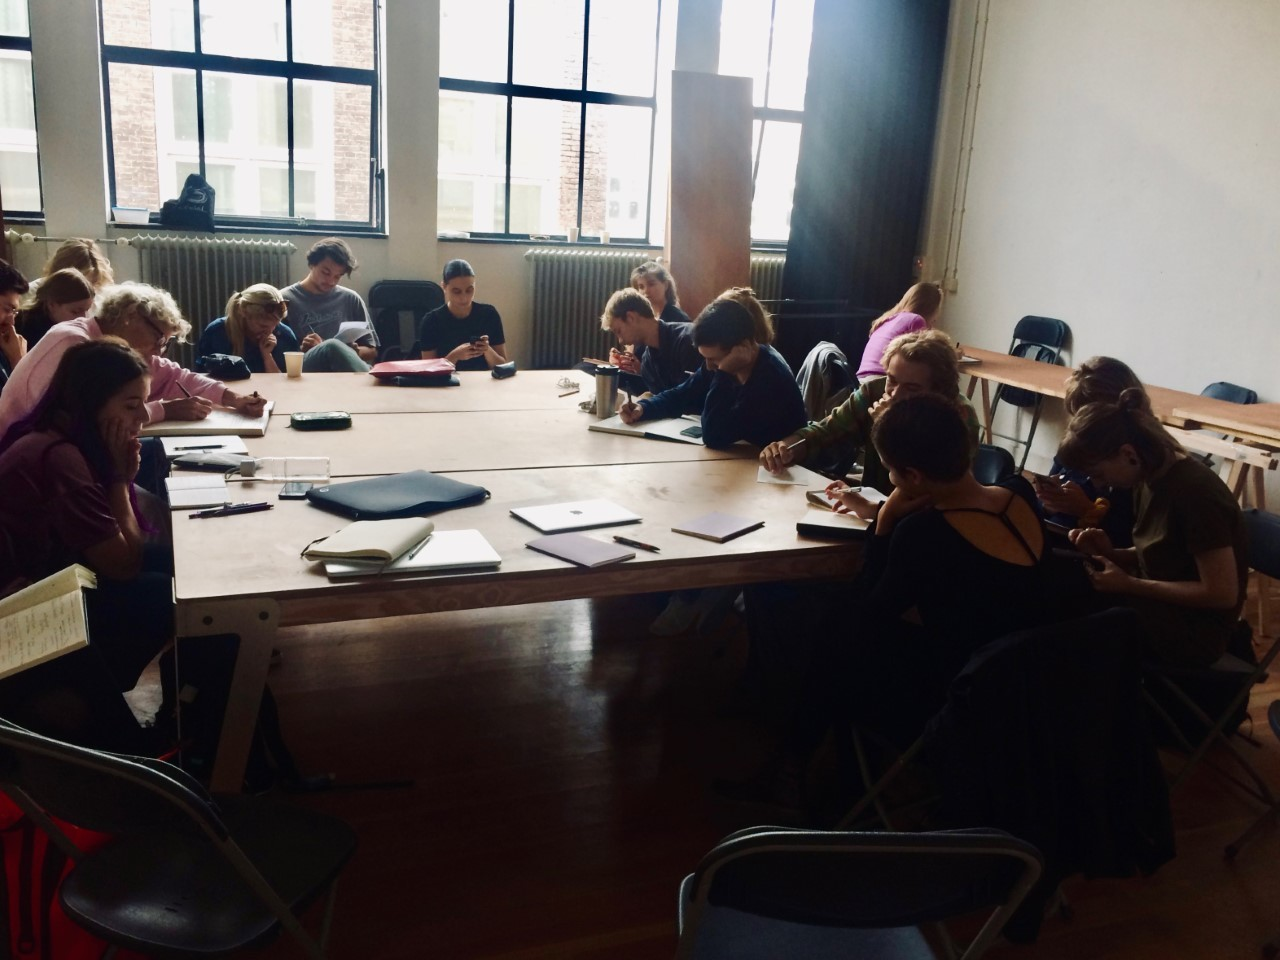 Reflection and writing at the IST Lab 'Crafting your Thinking, Reflecting your Craft', 2018